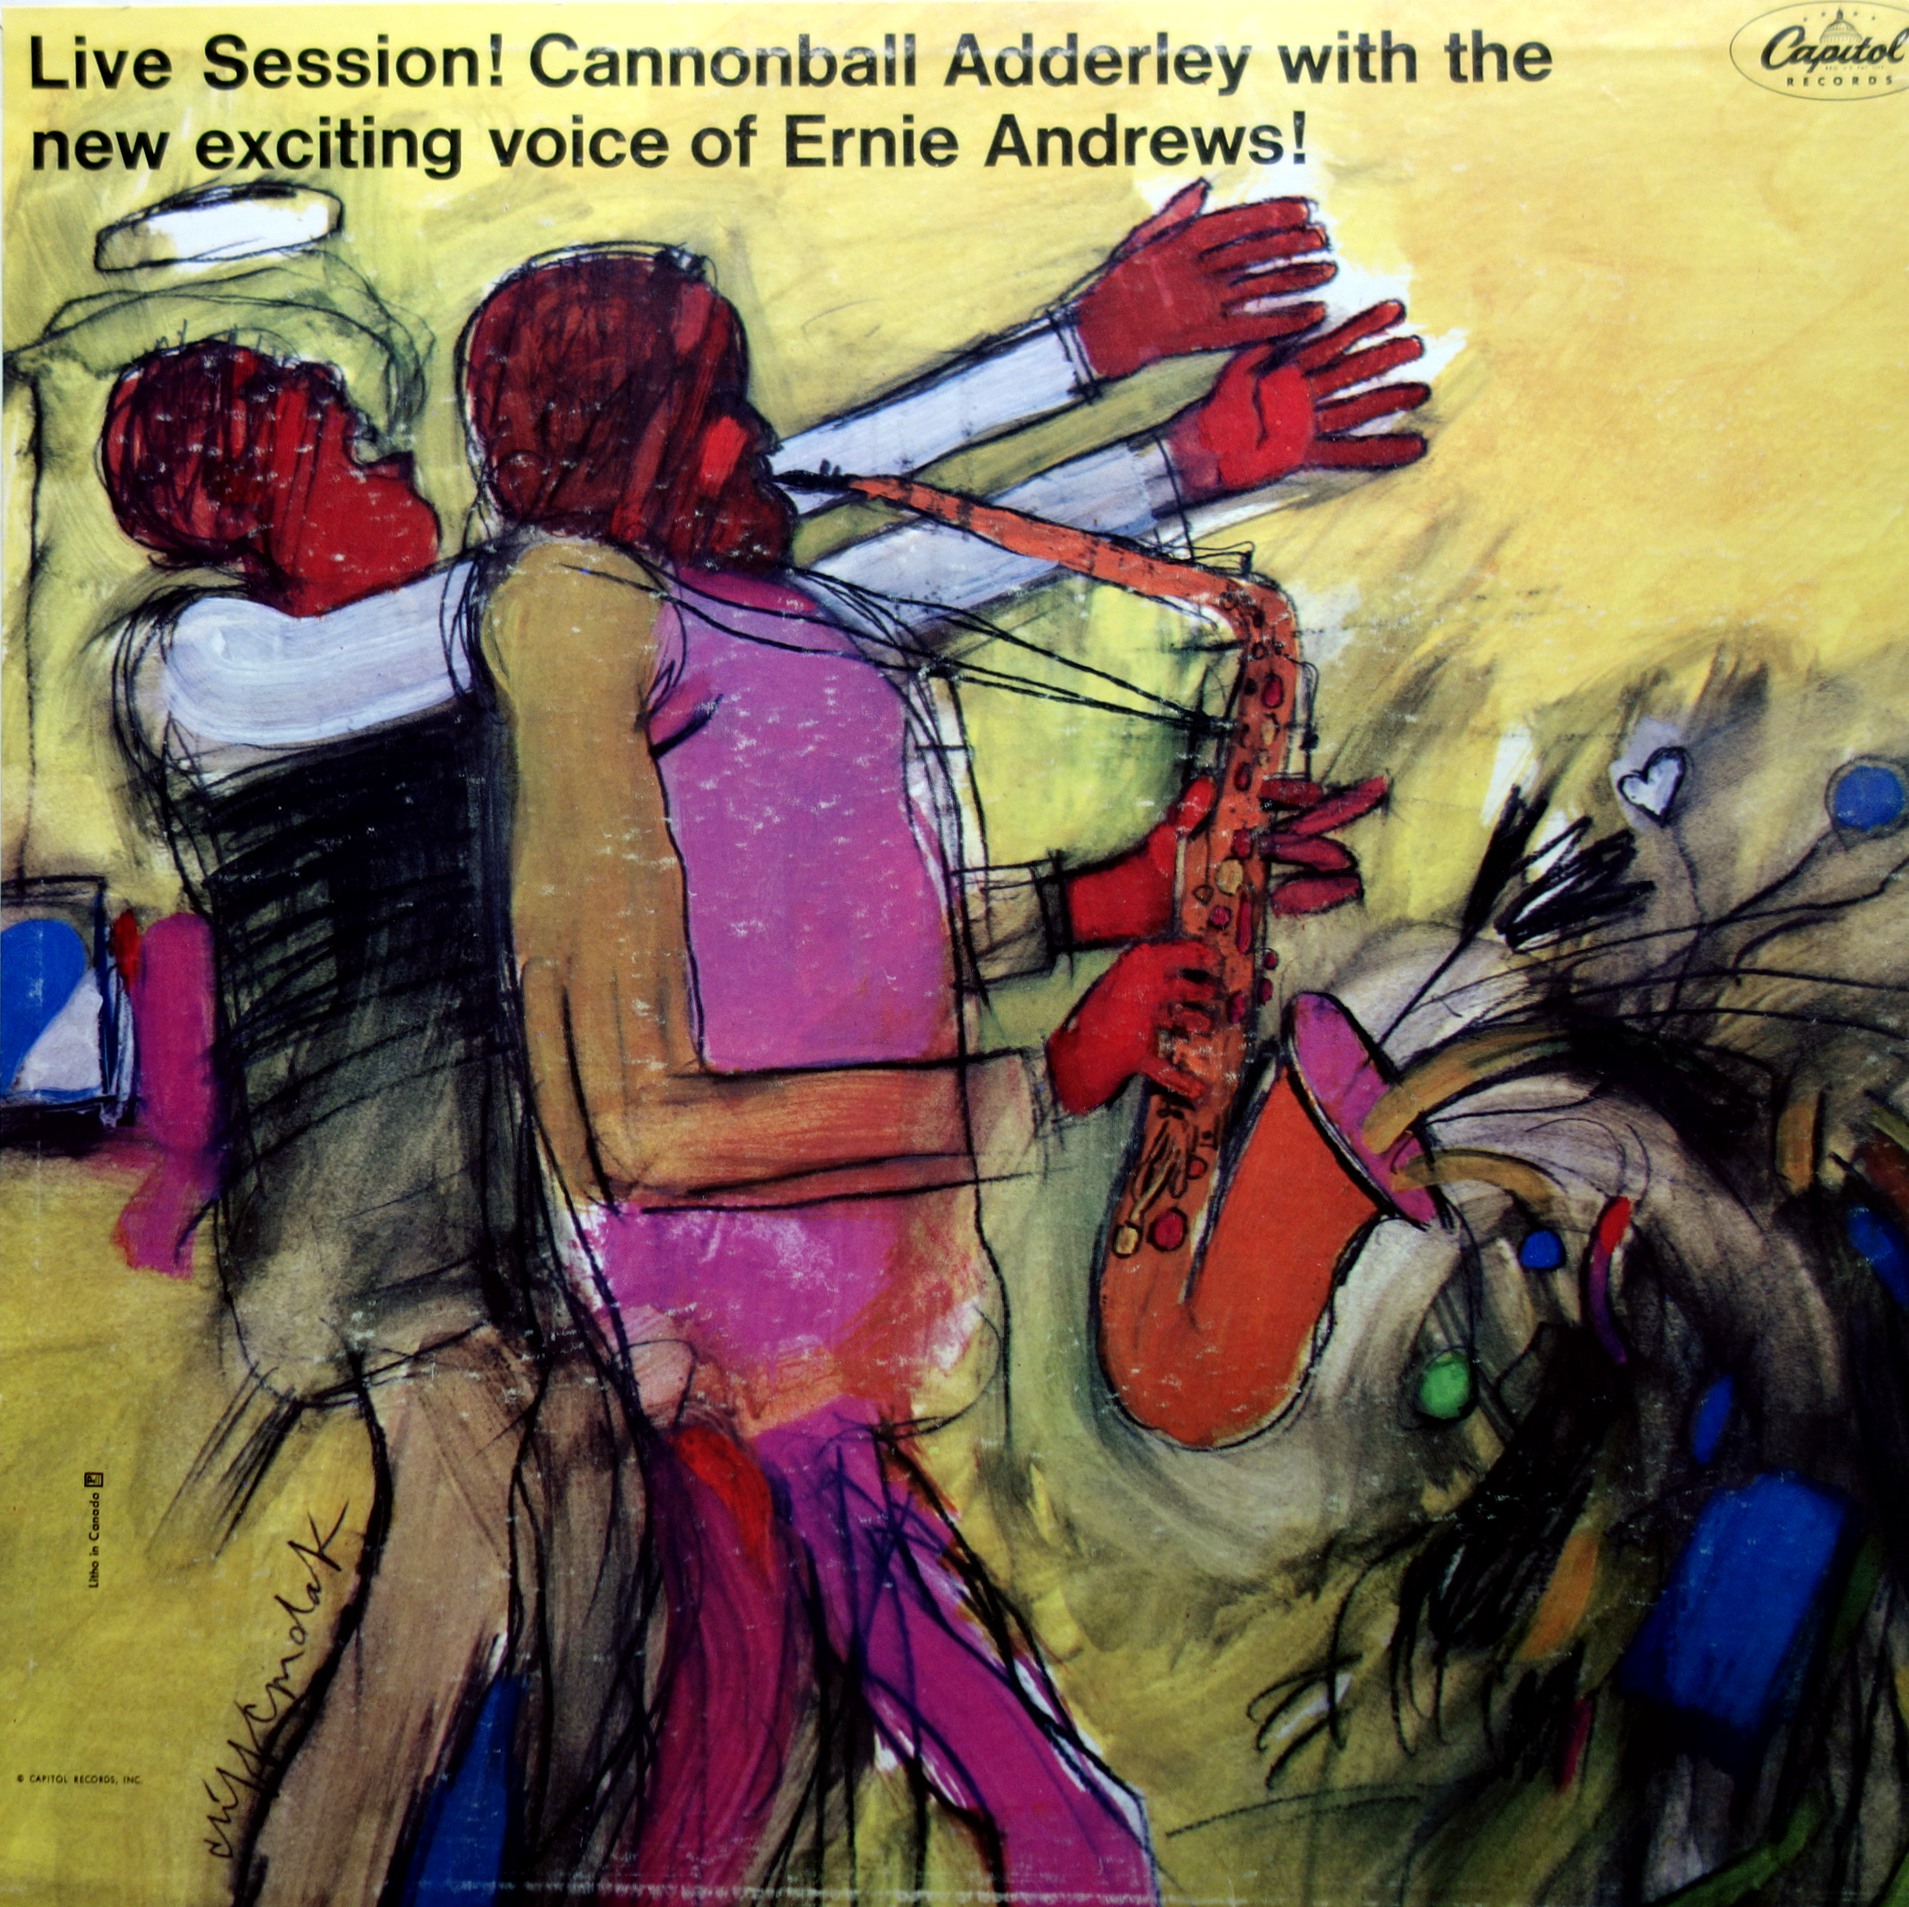 LP Cannonball Adderley / Ernie Andrews ‎– Live Session!